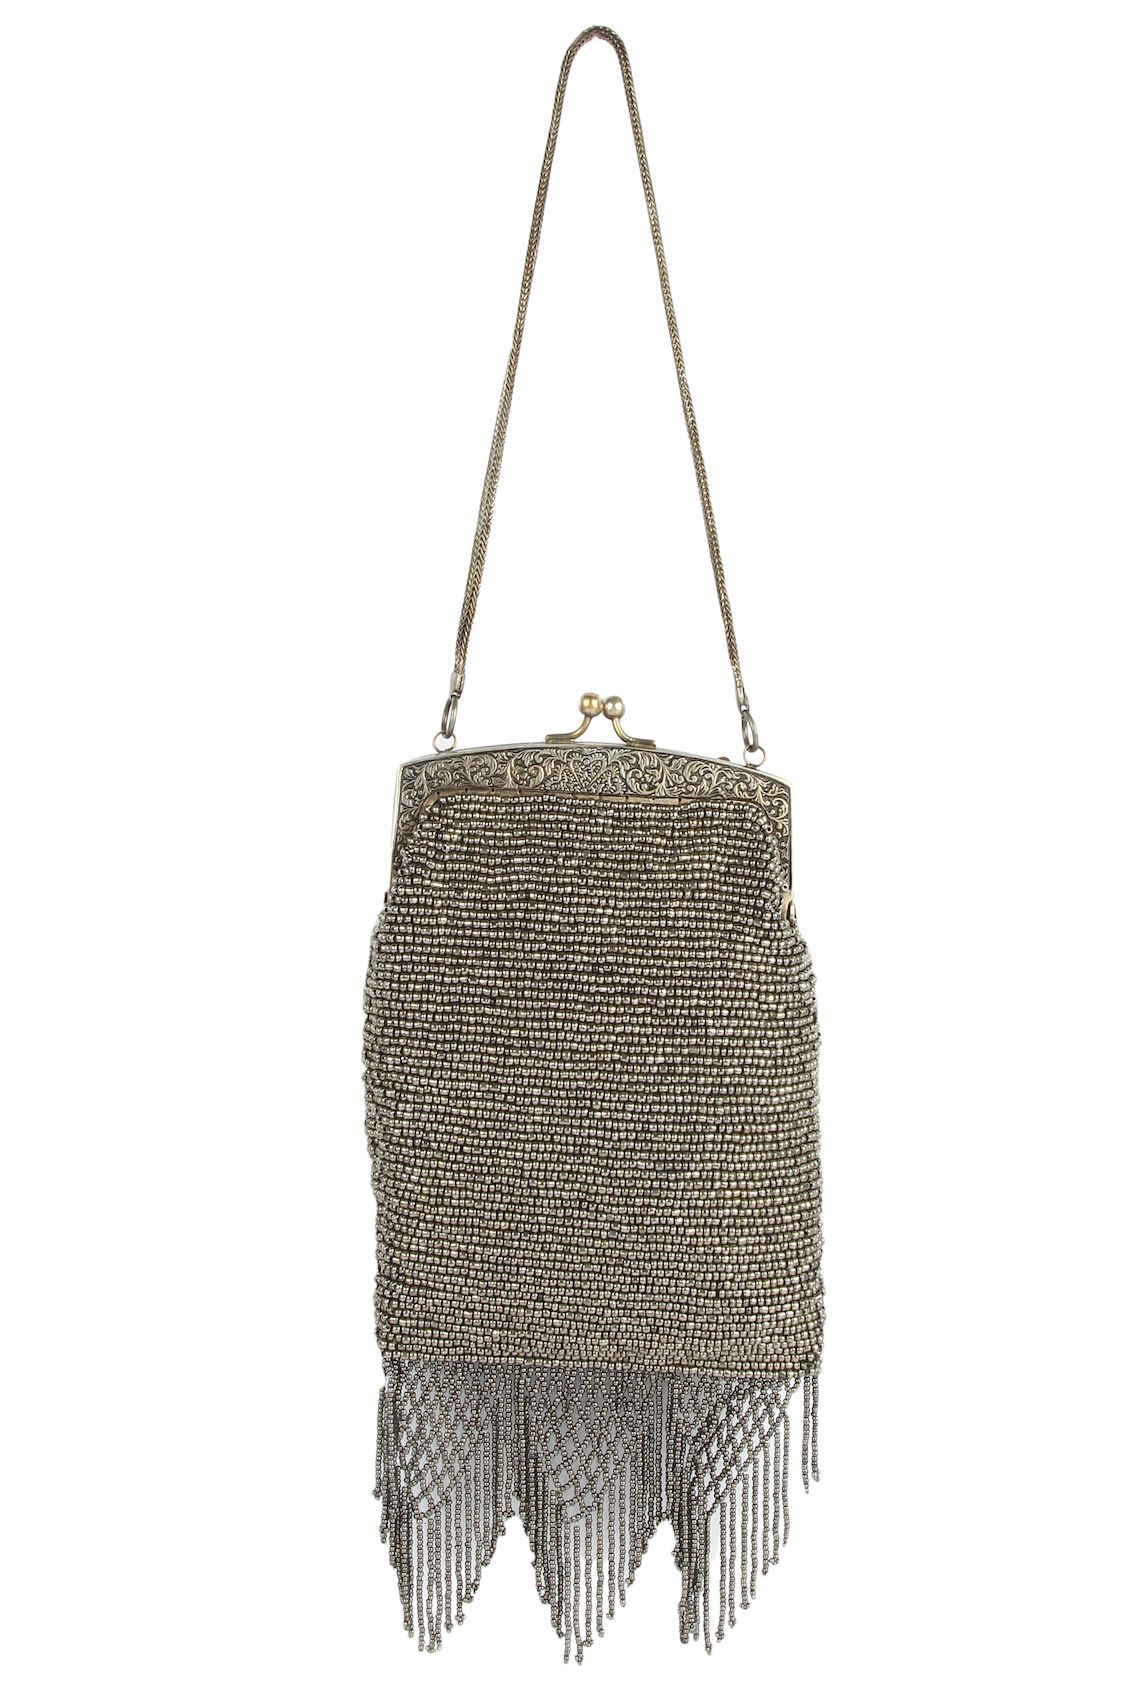 Pin By Mybatua On Evening Bags Pinterest Ic Clothing Handbags And Fashion